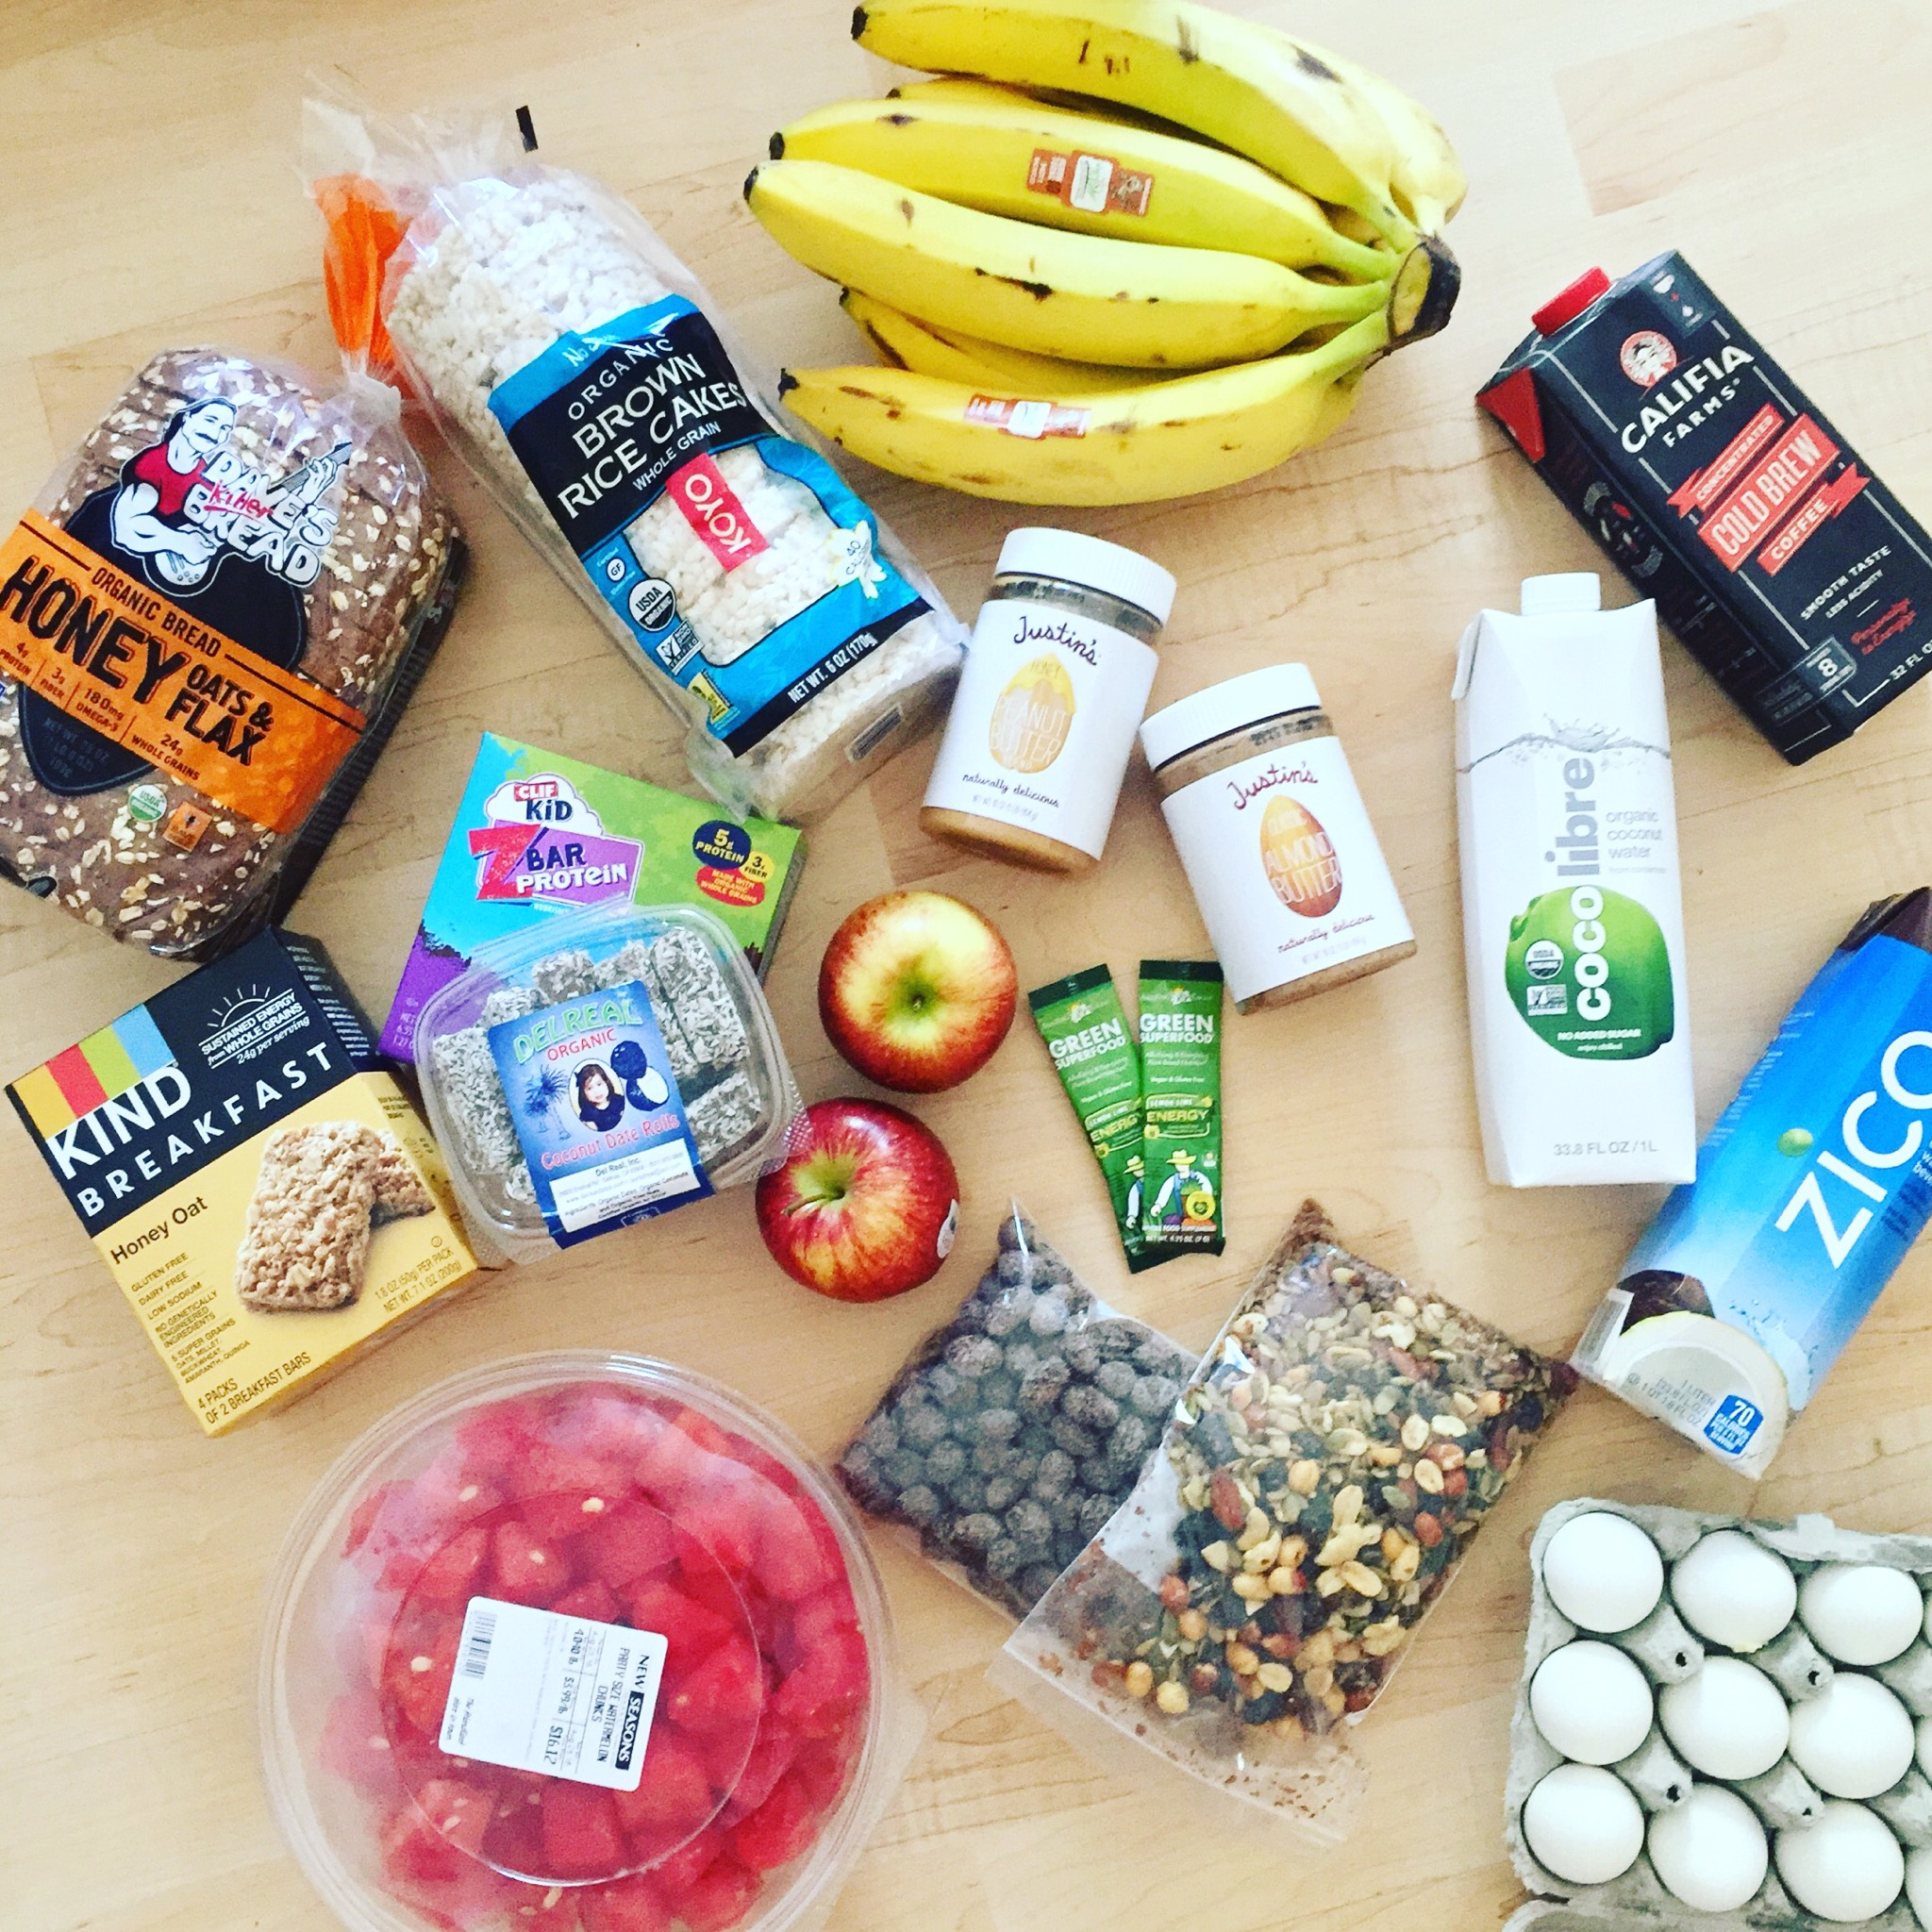 All the healthy snacks!